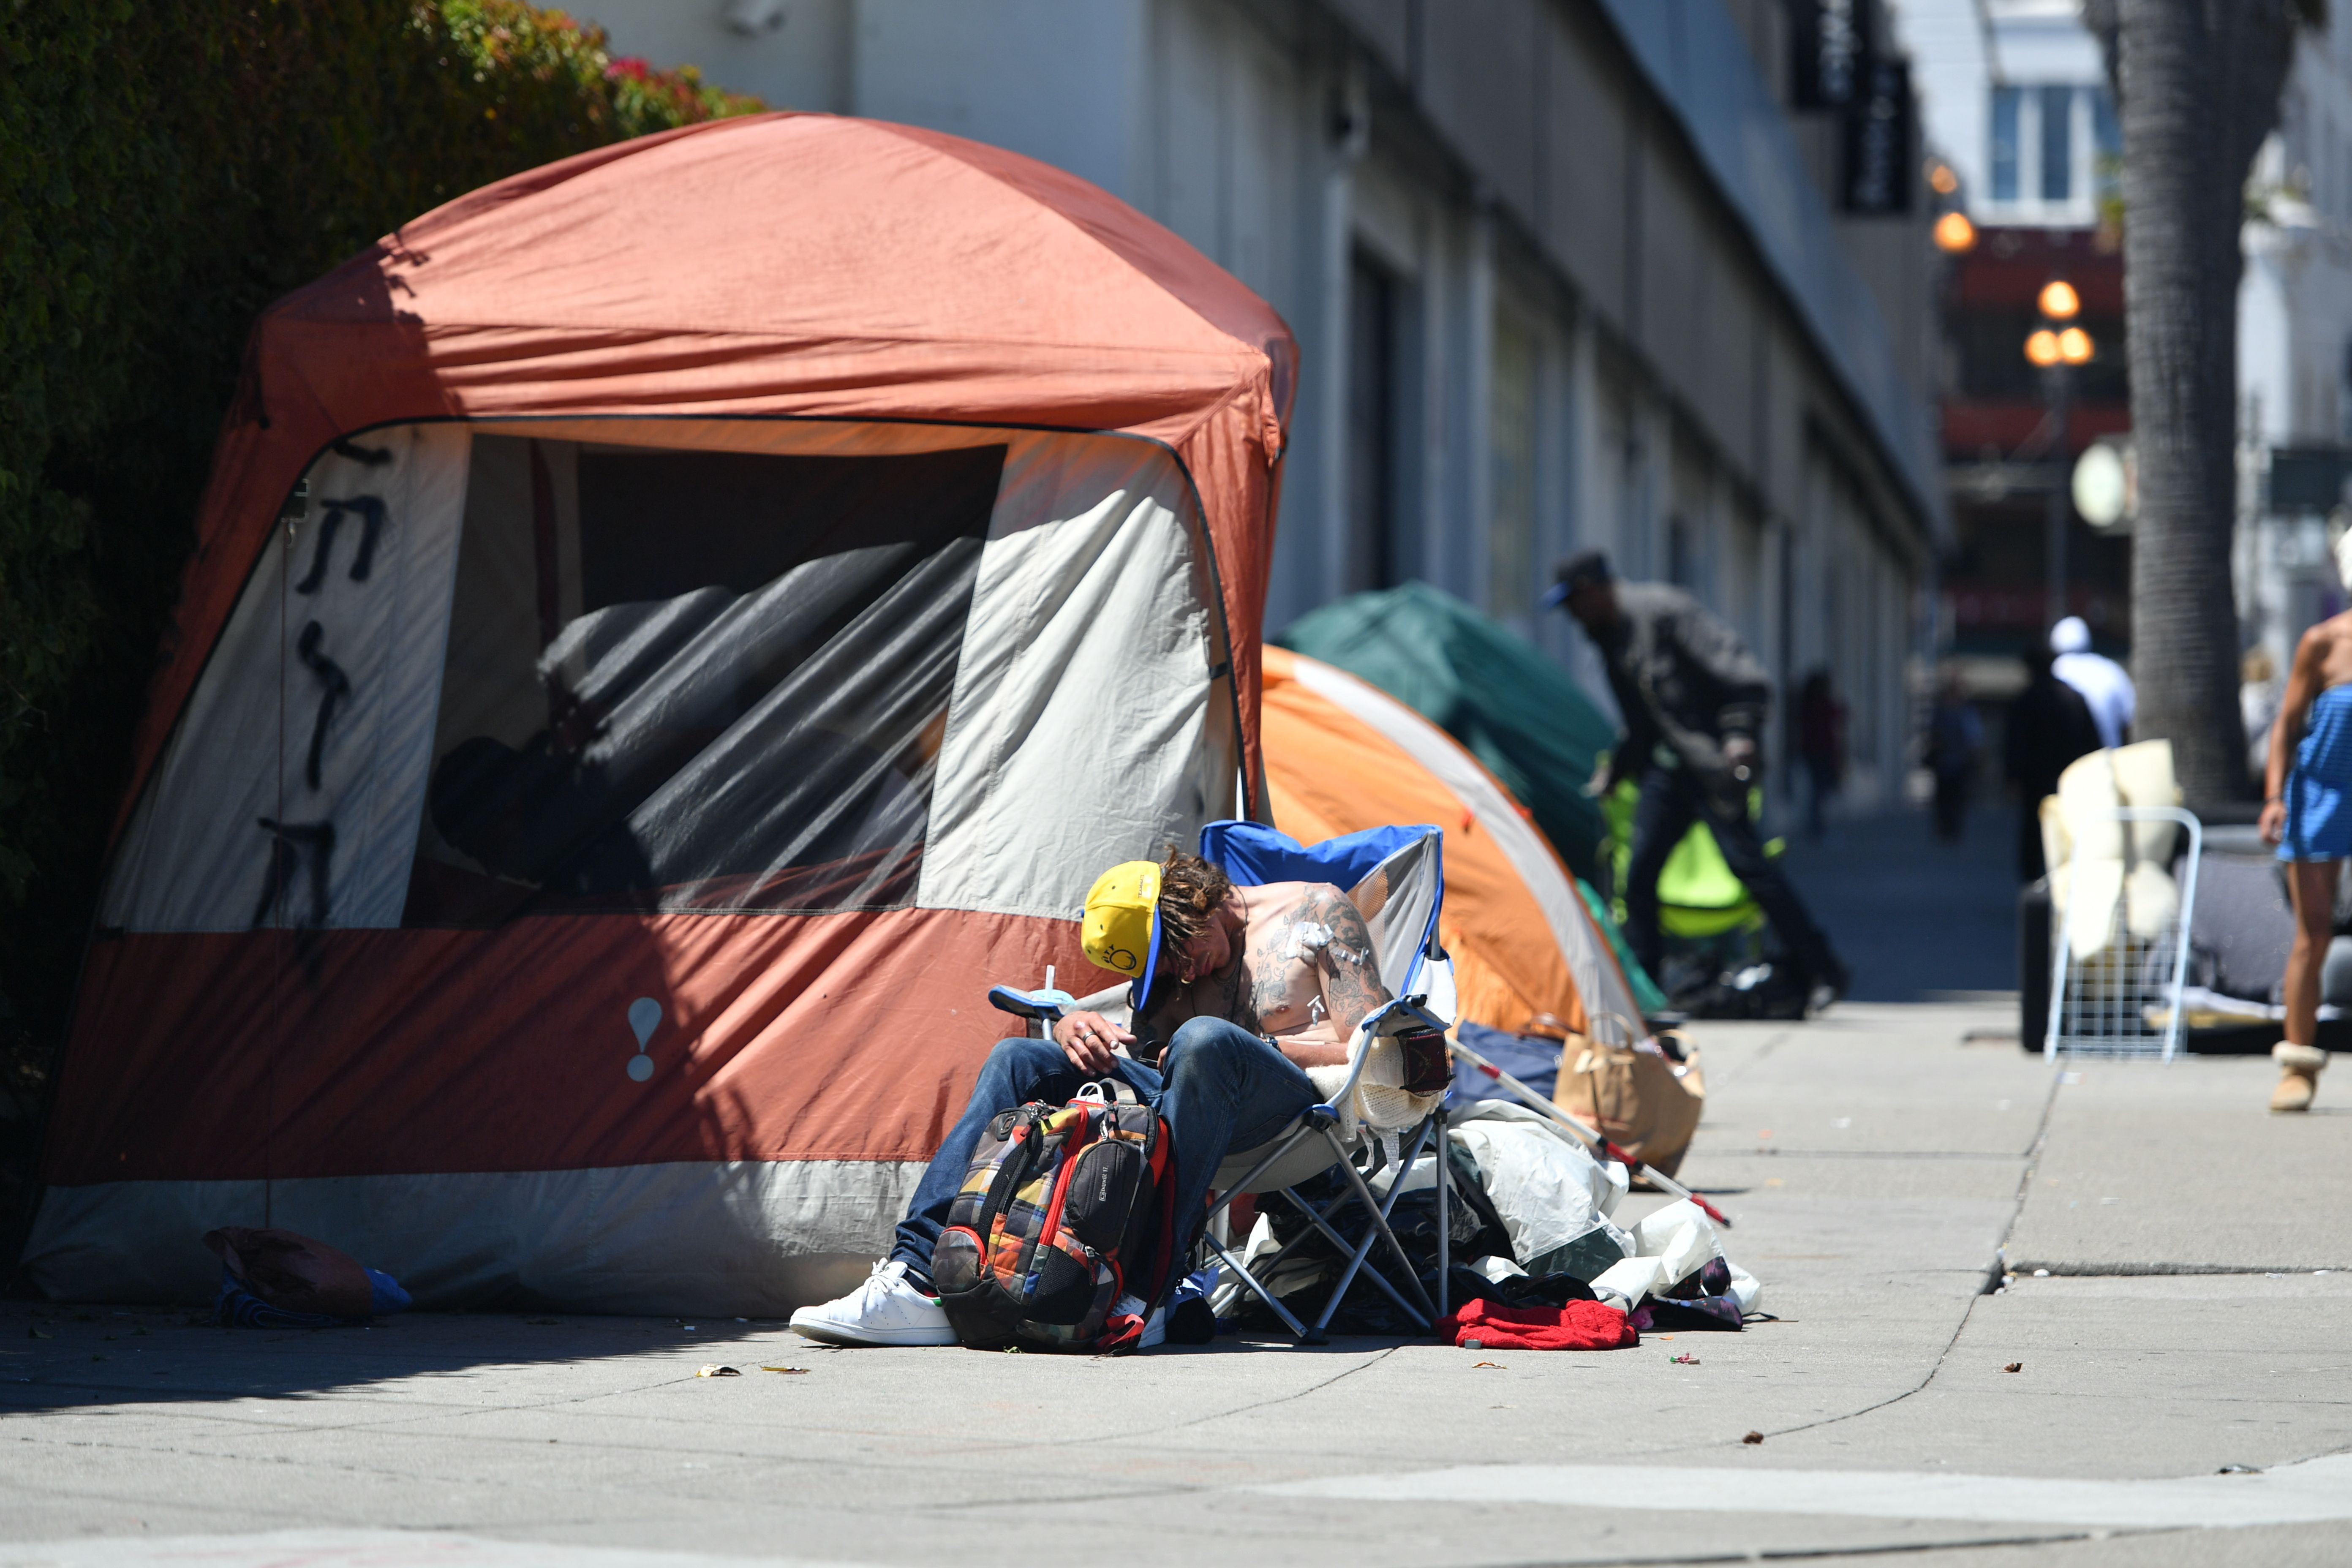 A homeless man sleeps in front of his tent along Van Ness Avenue in downtown San Francisco, California on June, 27, 2016. Homelessness is on the rise in the city irking residents and bringing the problem under a spotlight. (JOSH EDELSON/AFP/Getty Images)